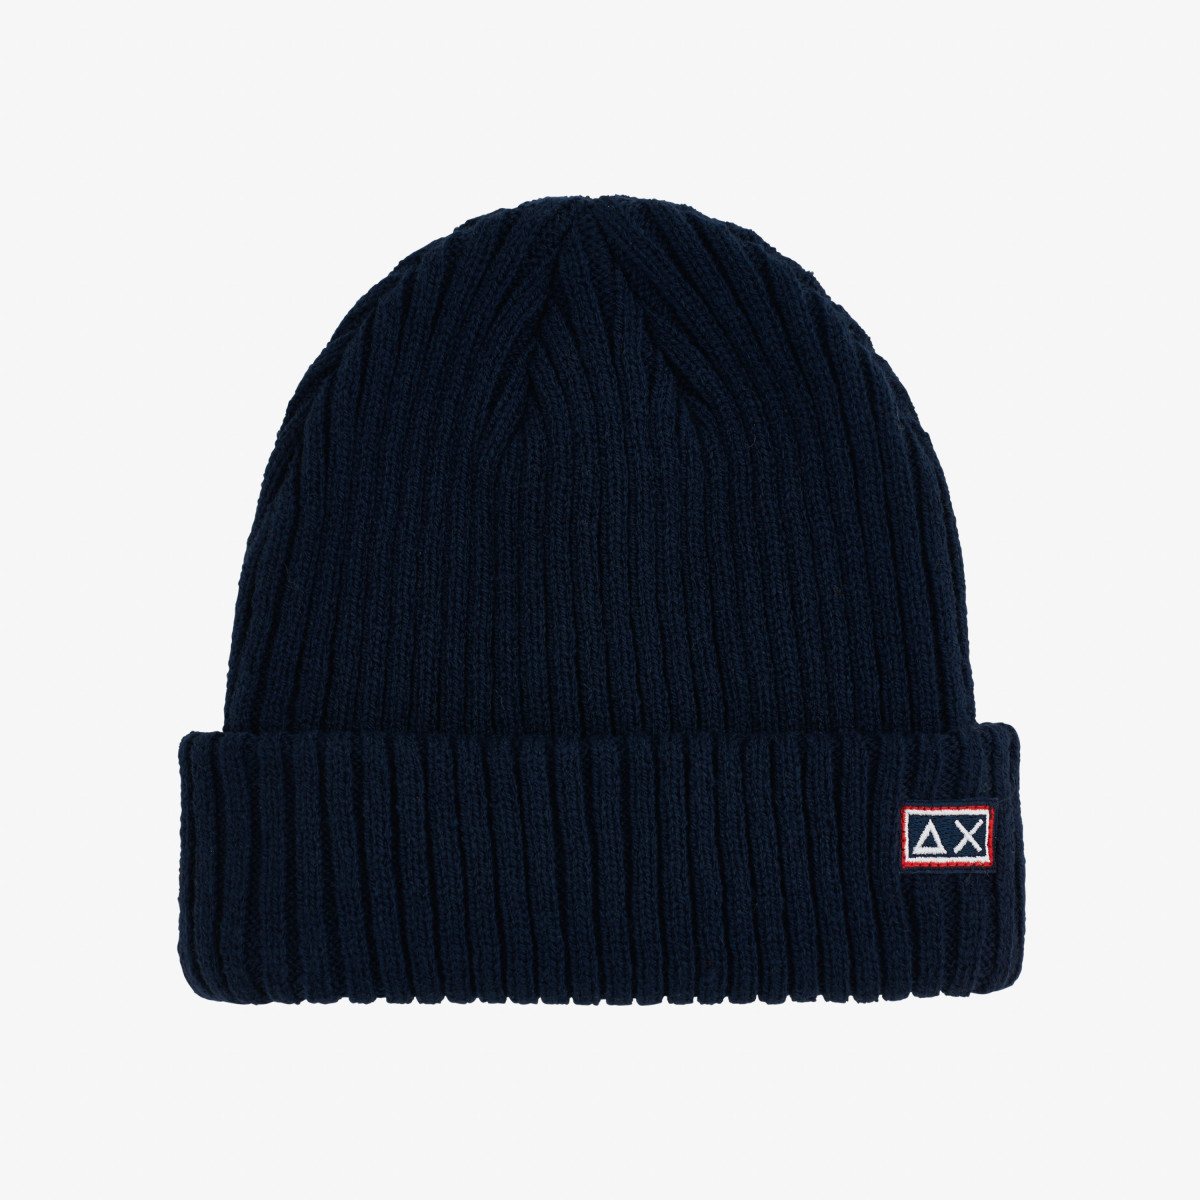 SAILOR CAP NAVY BLUE